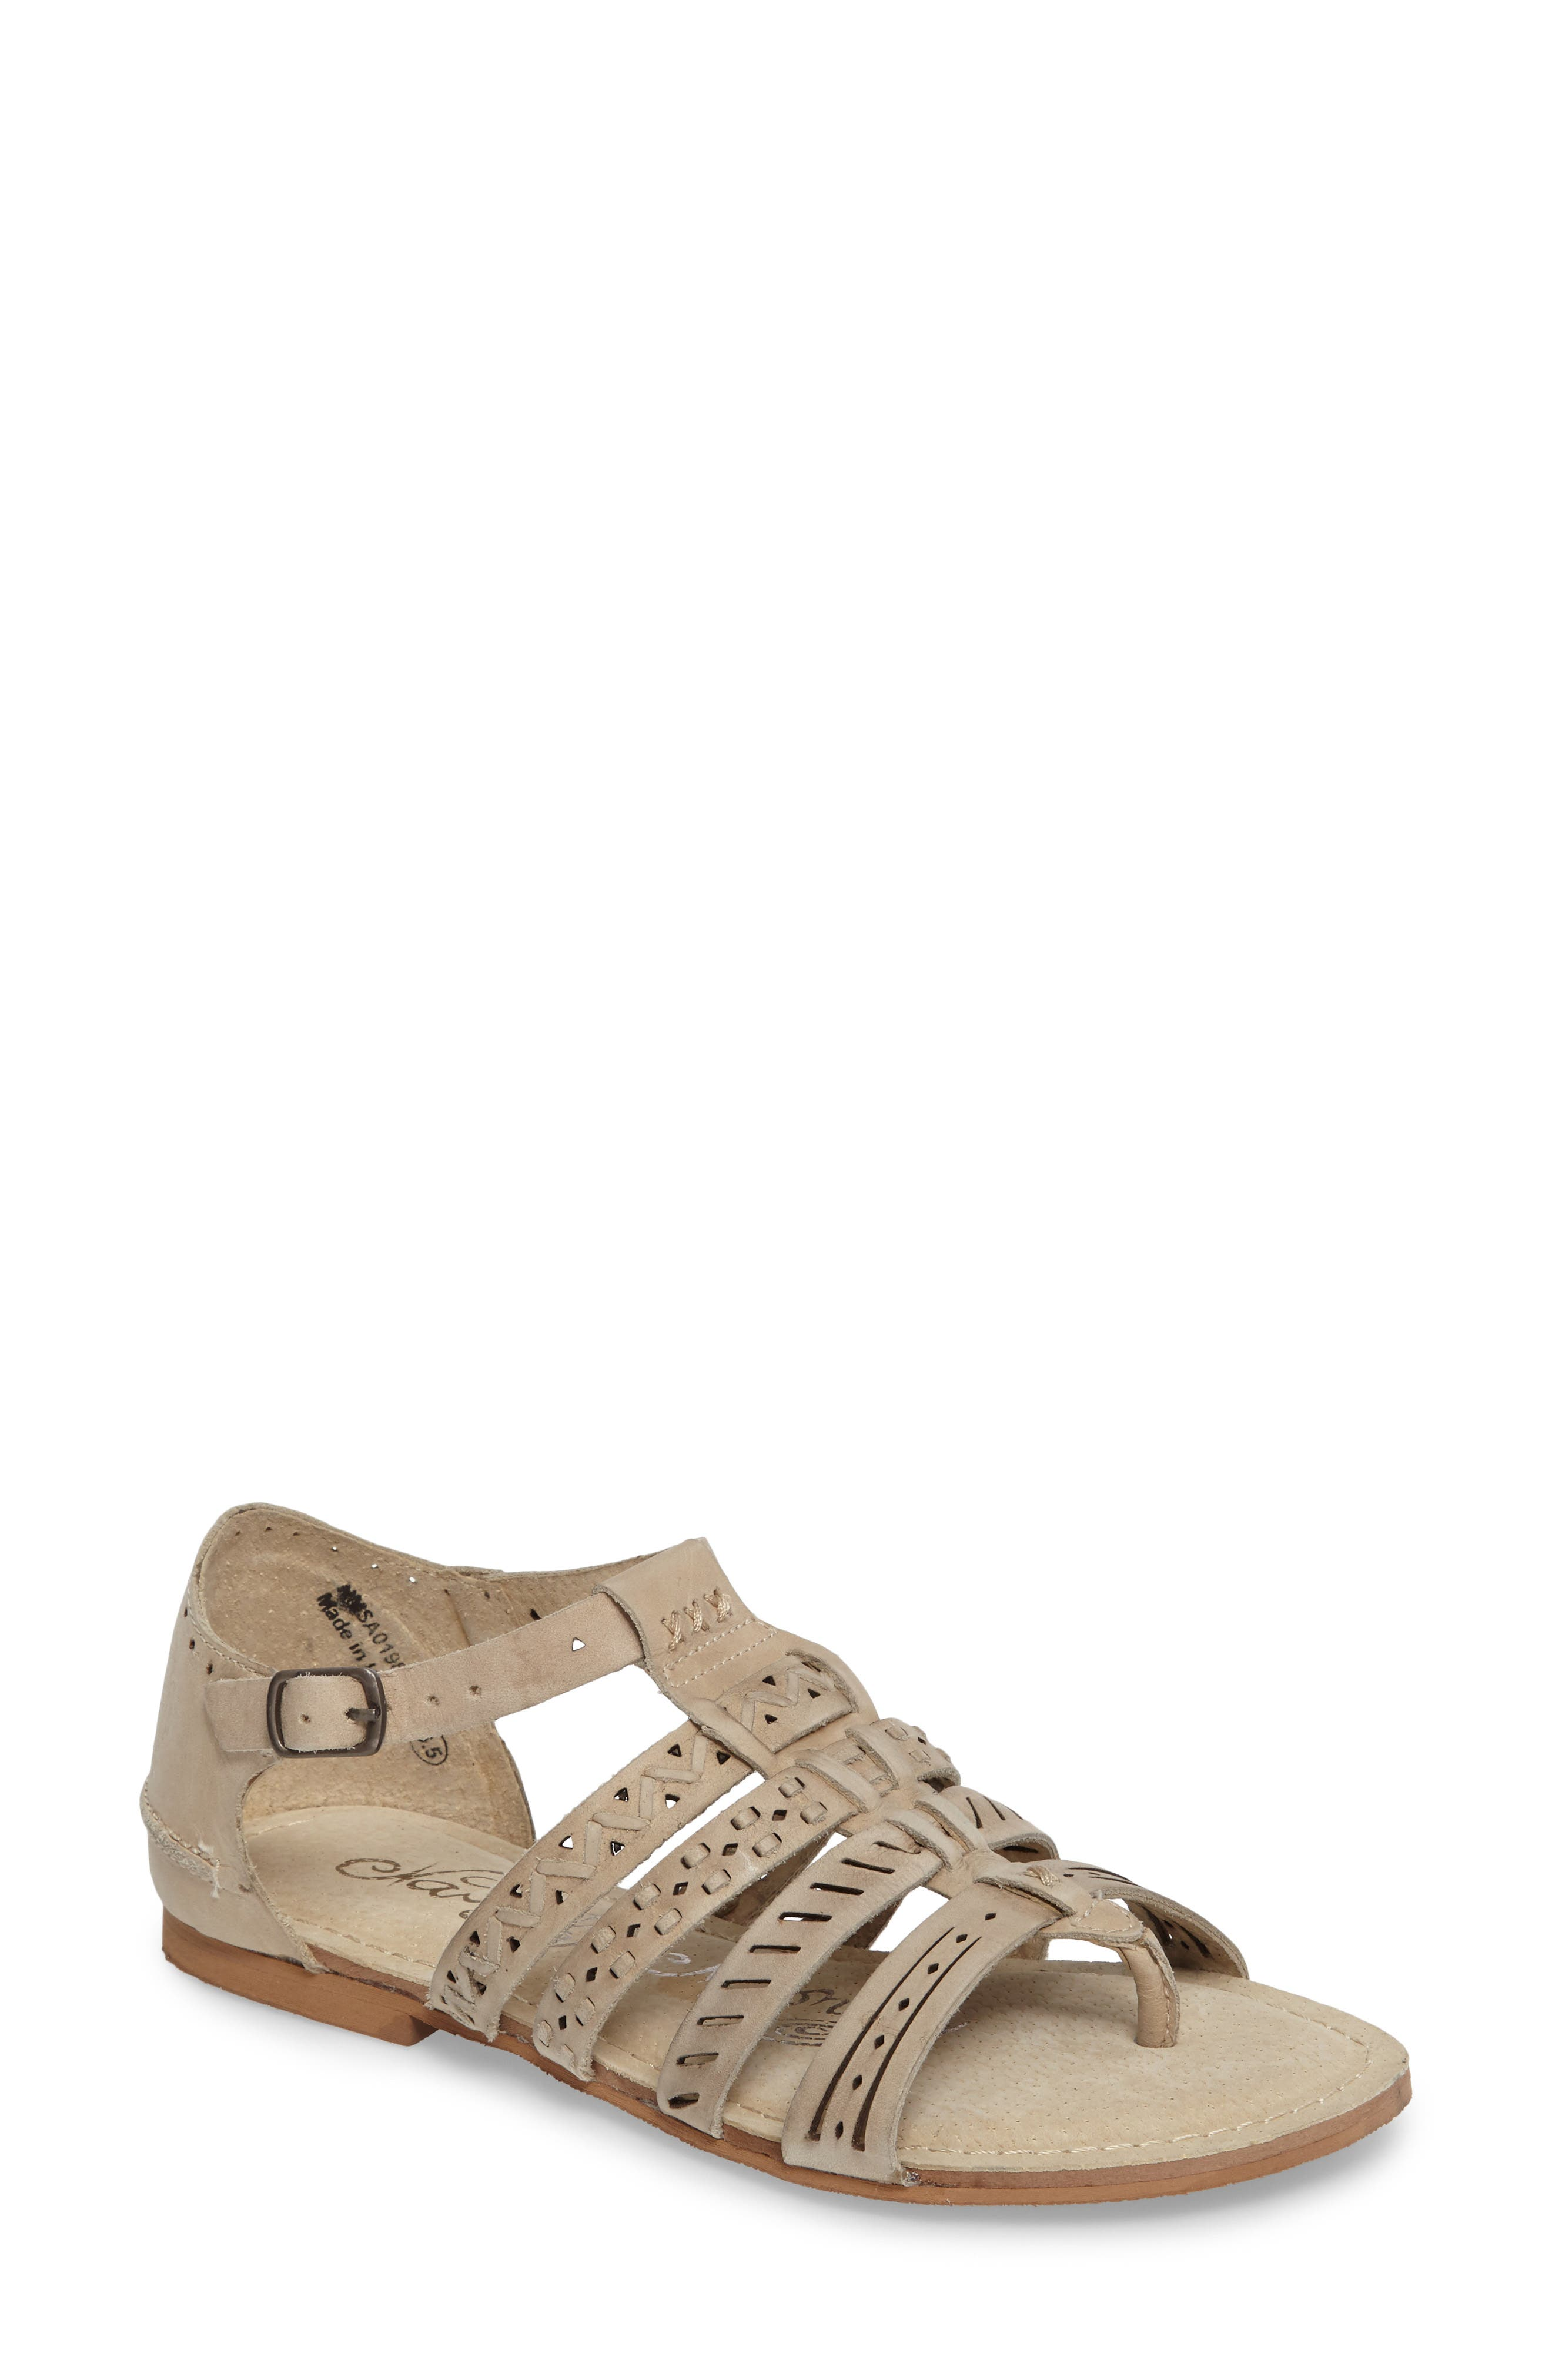 True Grit Perforated Sandal,                         Main,                         color, Cream Leather